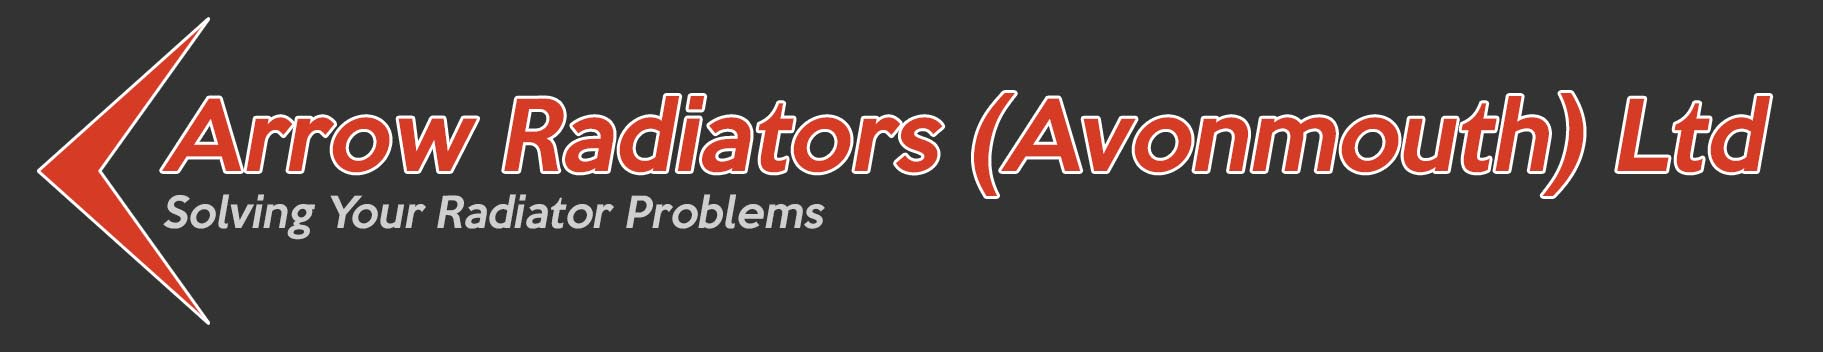 Radiators and fuel tanks - Bristol | Arrow Radiators (Avonmouth) Ltd